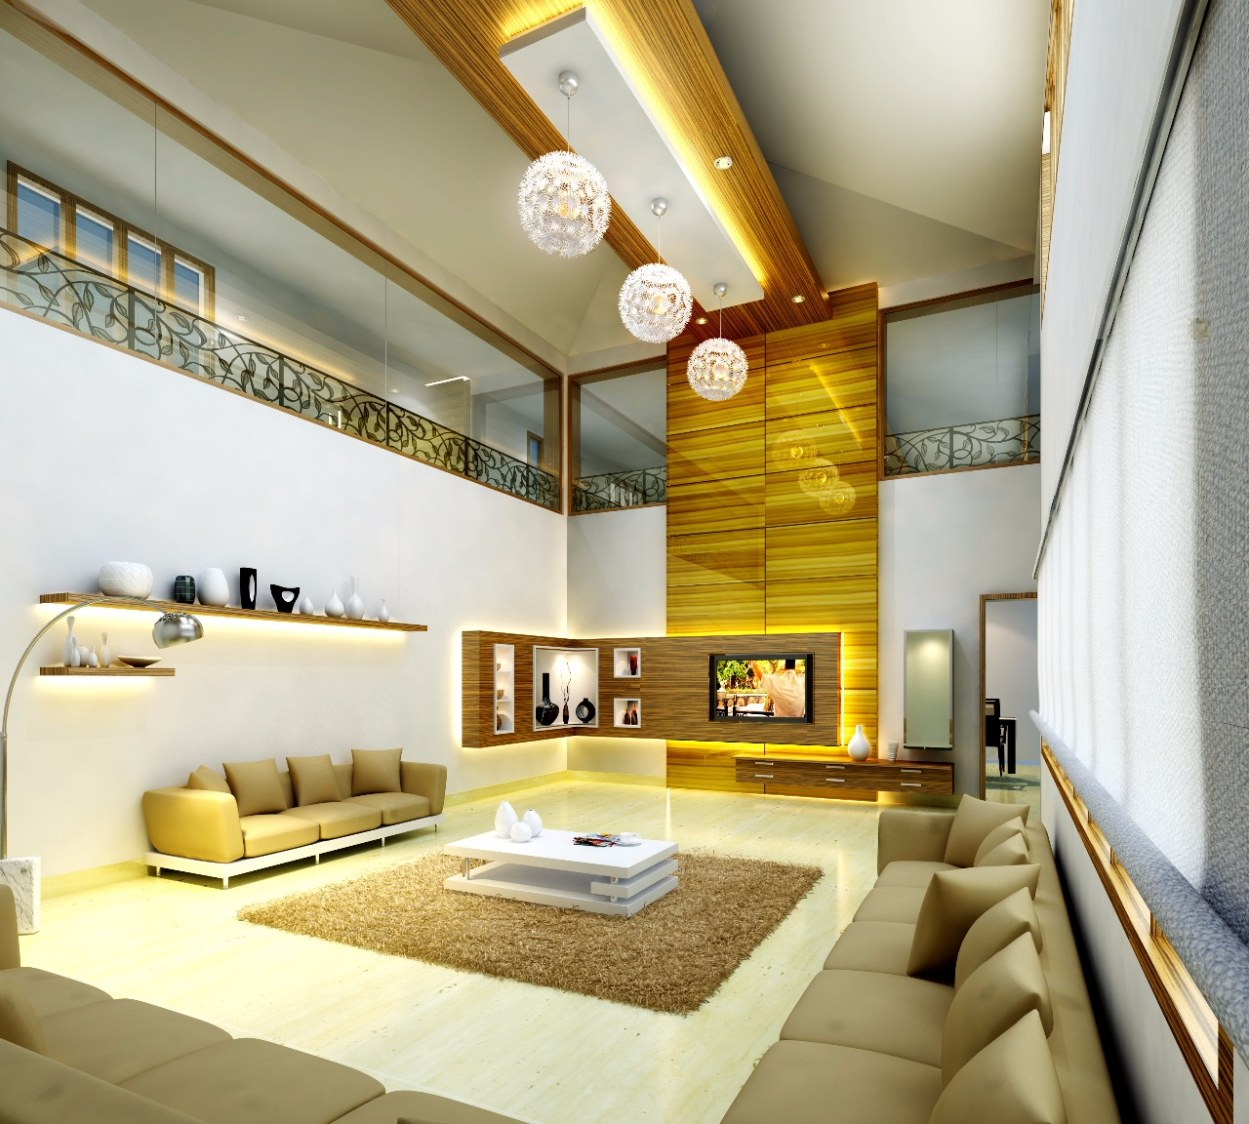 White Smoke Living Room With Golden Touch by Jerry Meshach J Living-room Modern   Interior Design Photos & Ideas